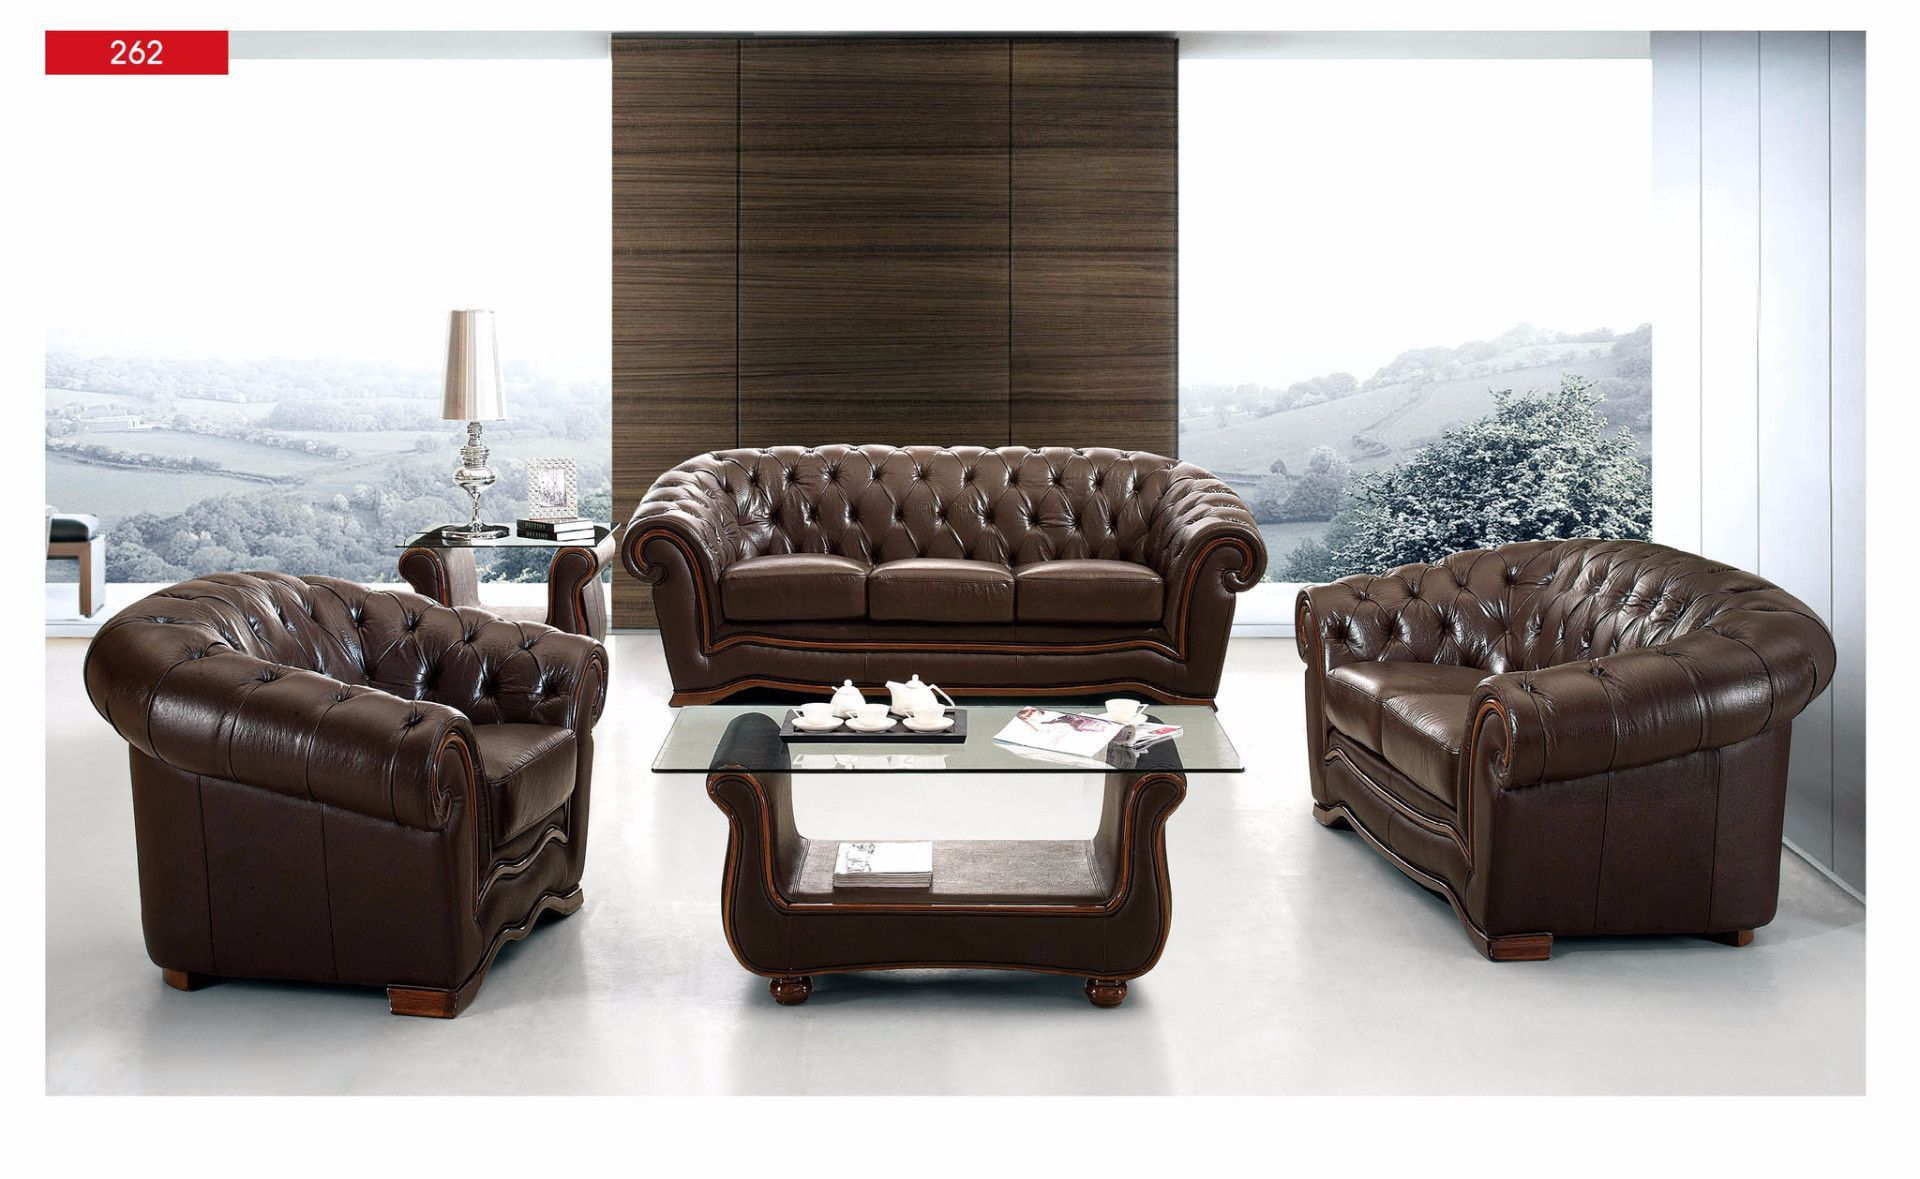 ESF Loveseat 262Description :This brown living room sofa has an inviting appeal and comfort. ESF Loveseat is wrapped in finest genuine Italian leather. Full leather comes standard for this Loveseatand you can always special order it in variety of colors.(Other Product like Sofa, Table and Chair etc., are optional)Materials:Genuine Full Leather FrontsGenuine Full Leather BacksComfortable Seating and BacksWell Constructed FrameComfortable ArmrestsBrown ColorDimensions:Loveseat: W 70x…